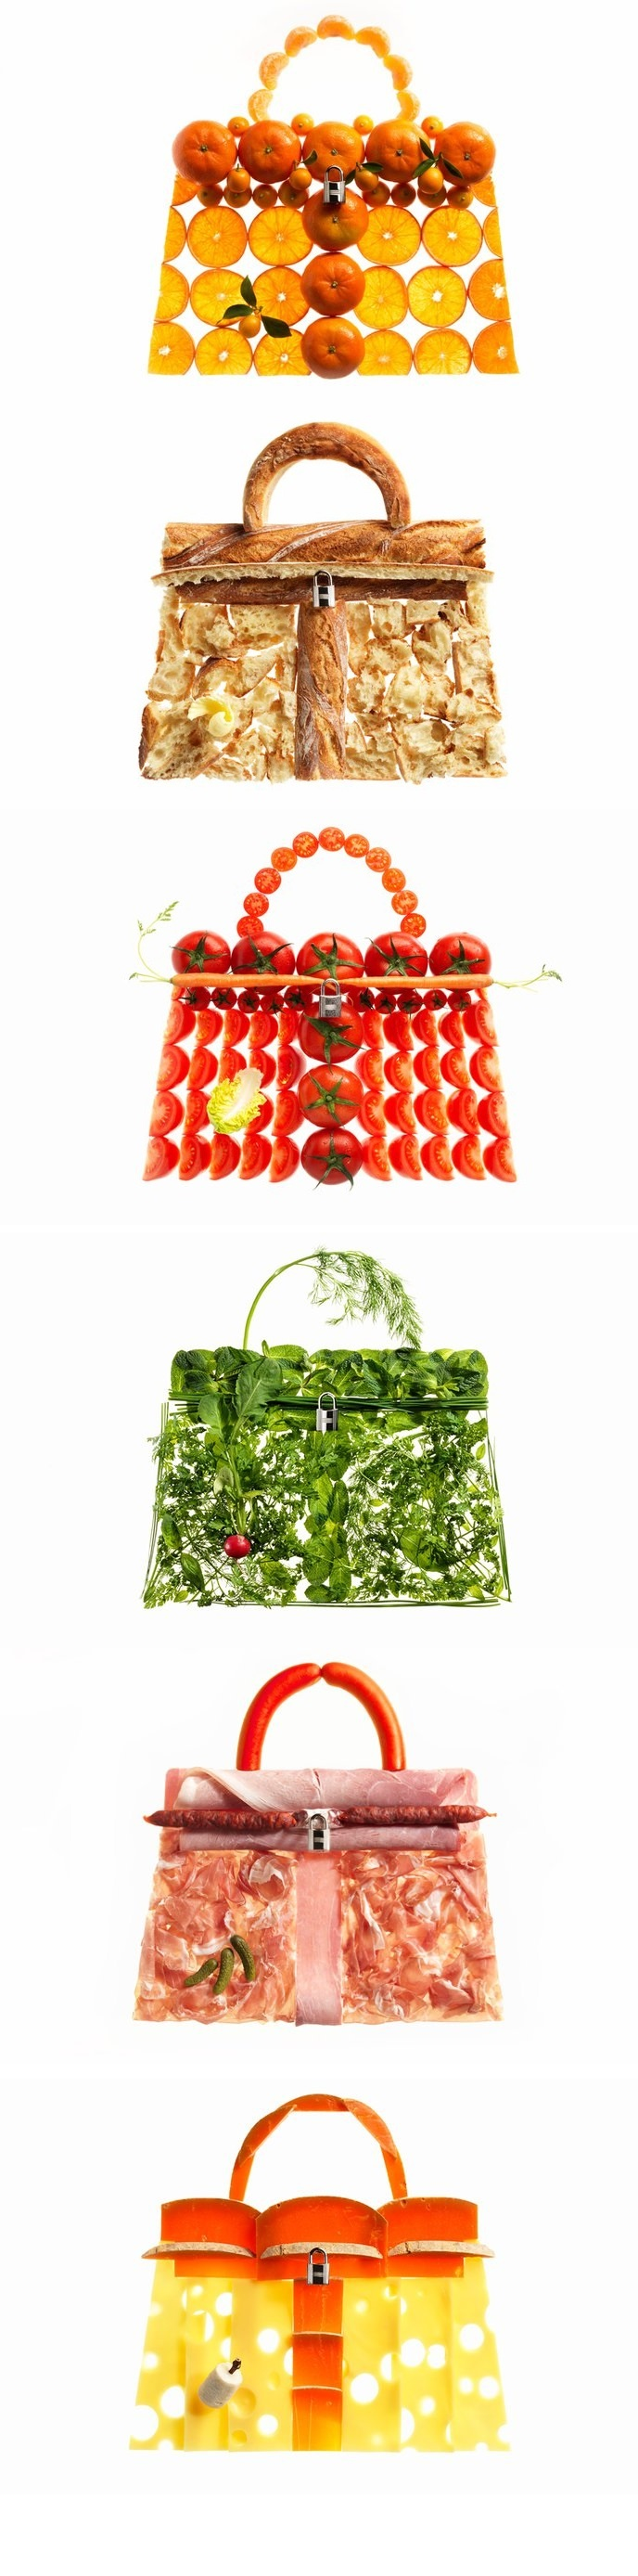 Hermes, Kelly picnic | House of Beccaria#